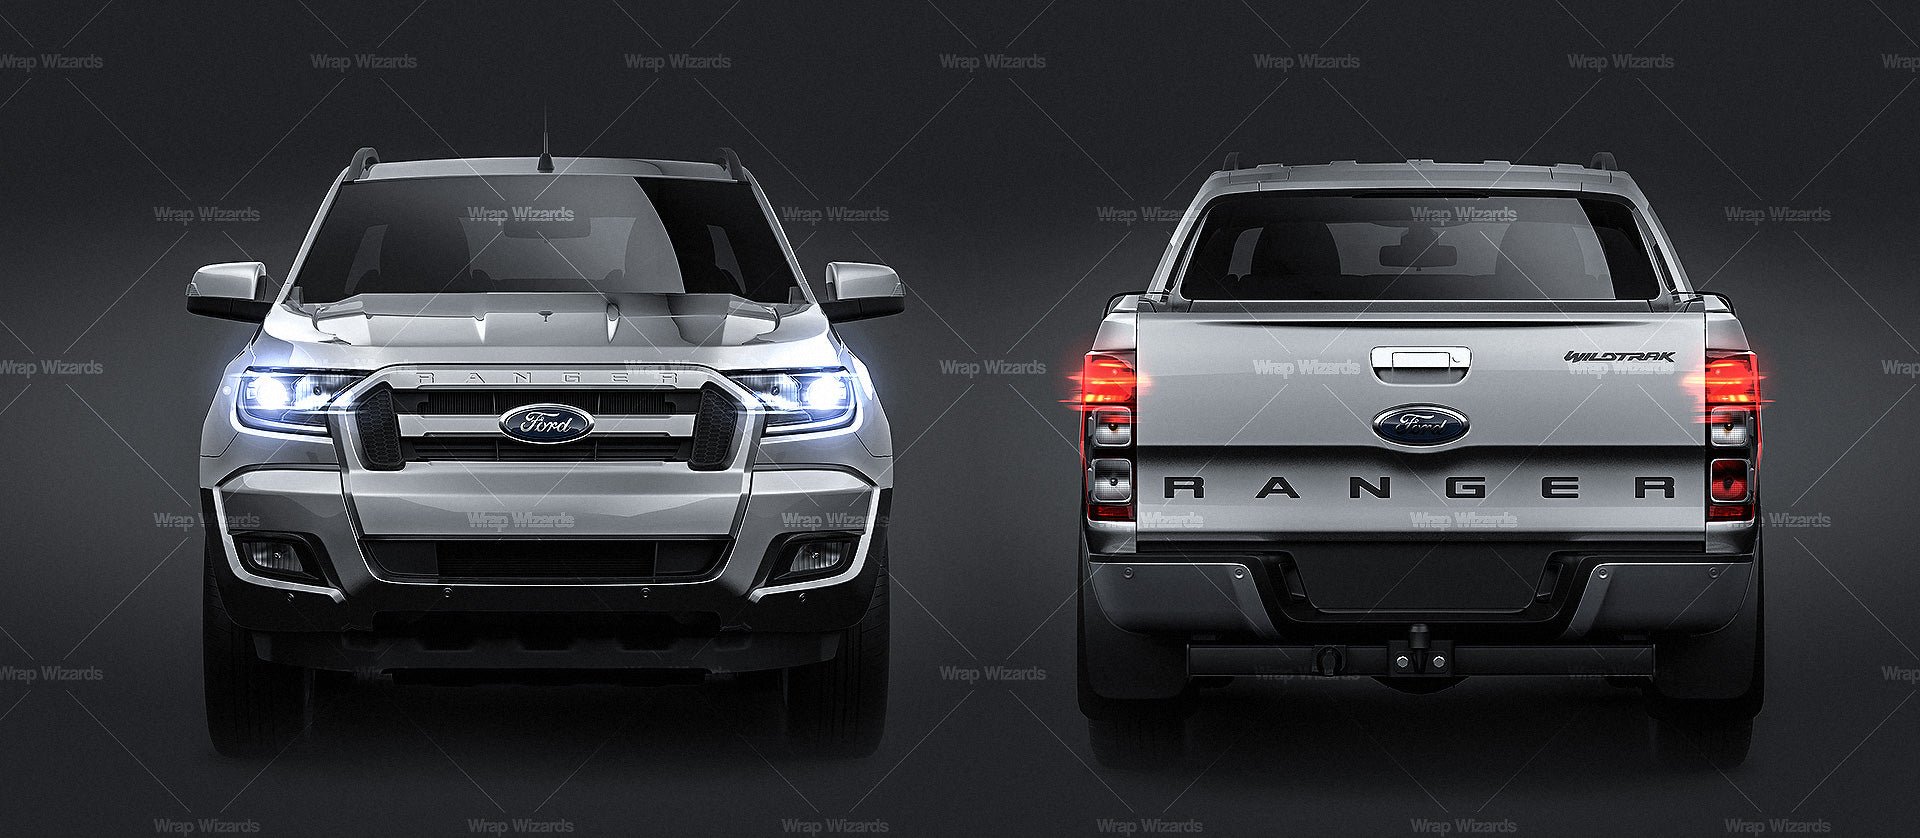 Ford Ranger Wildtrak 2017  all sides Car Mockup Template.psd